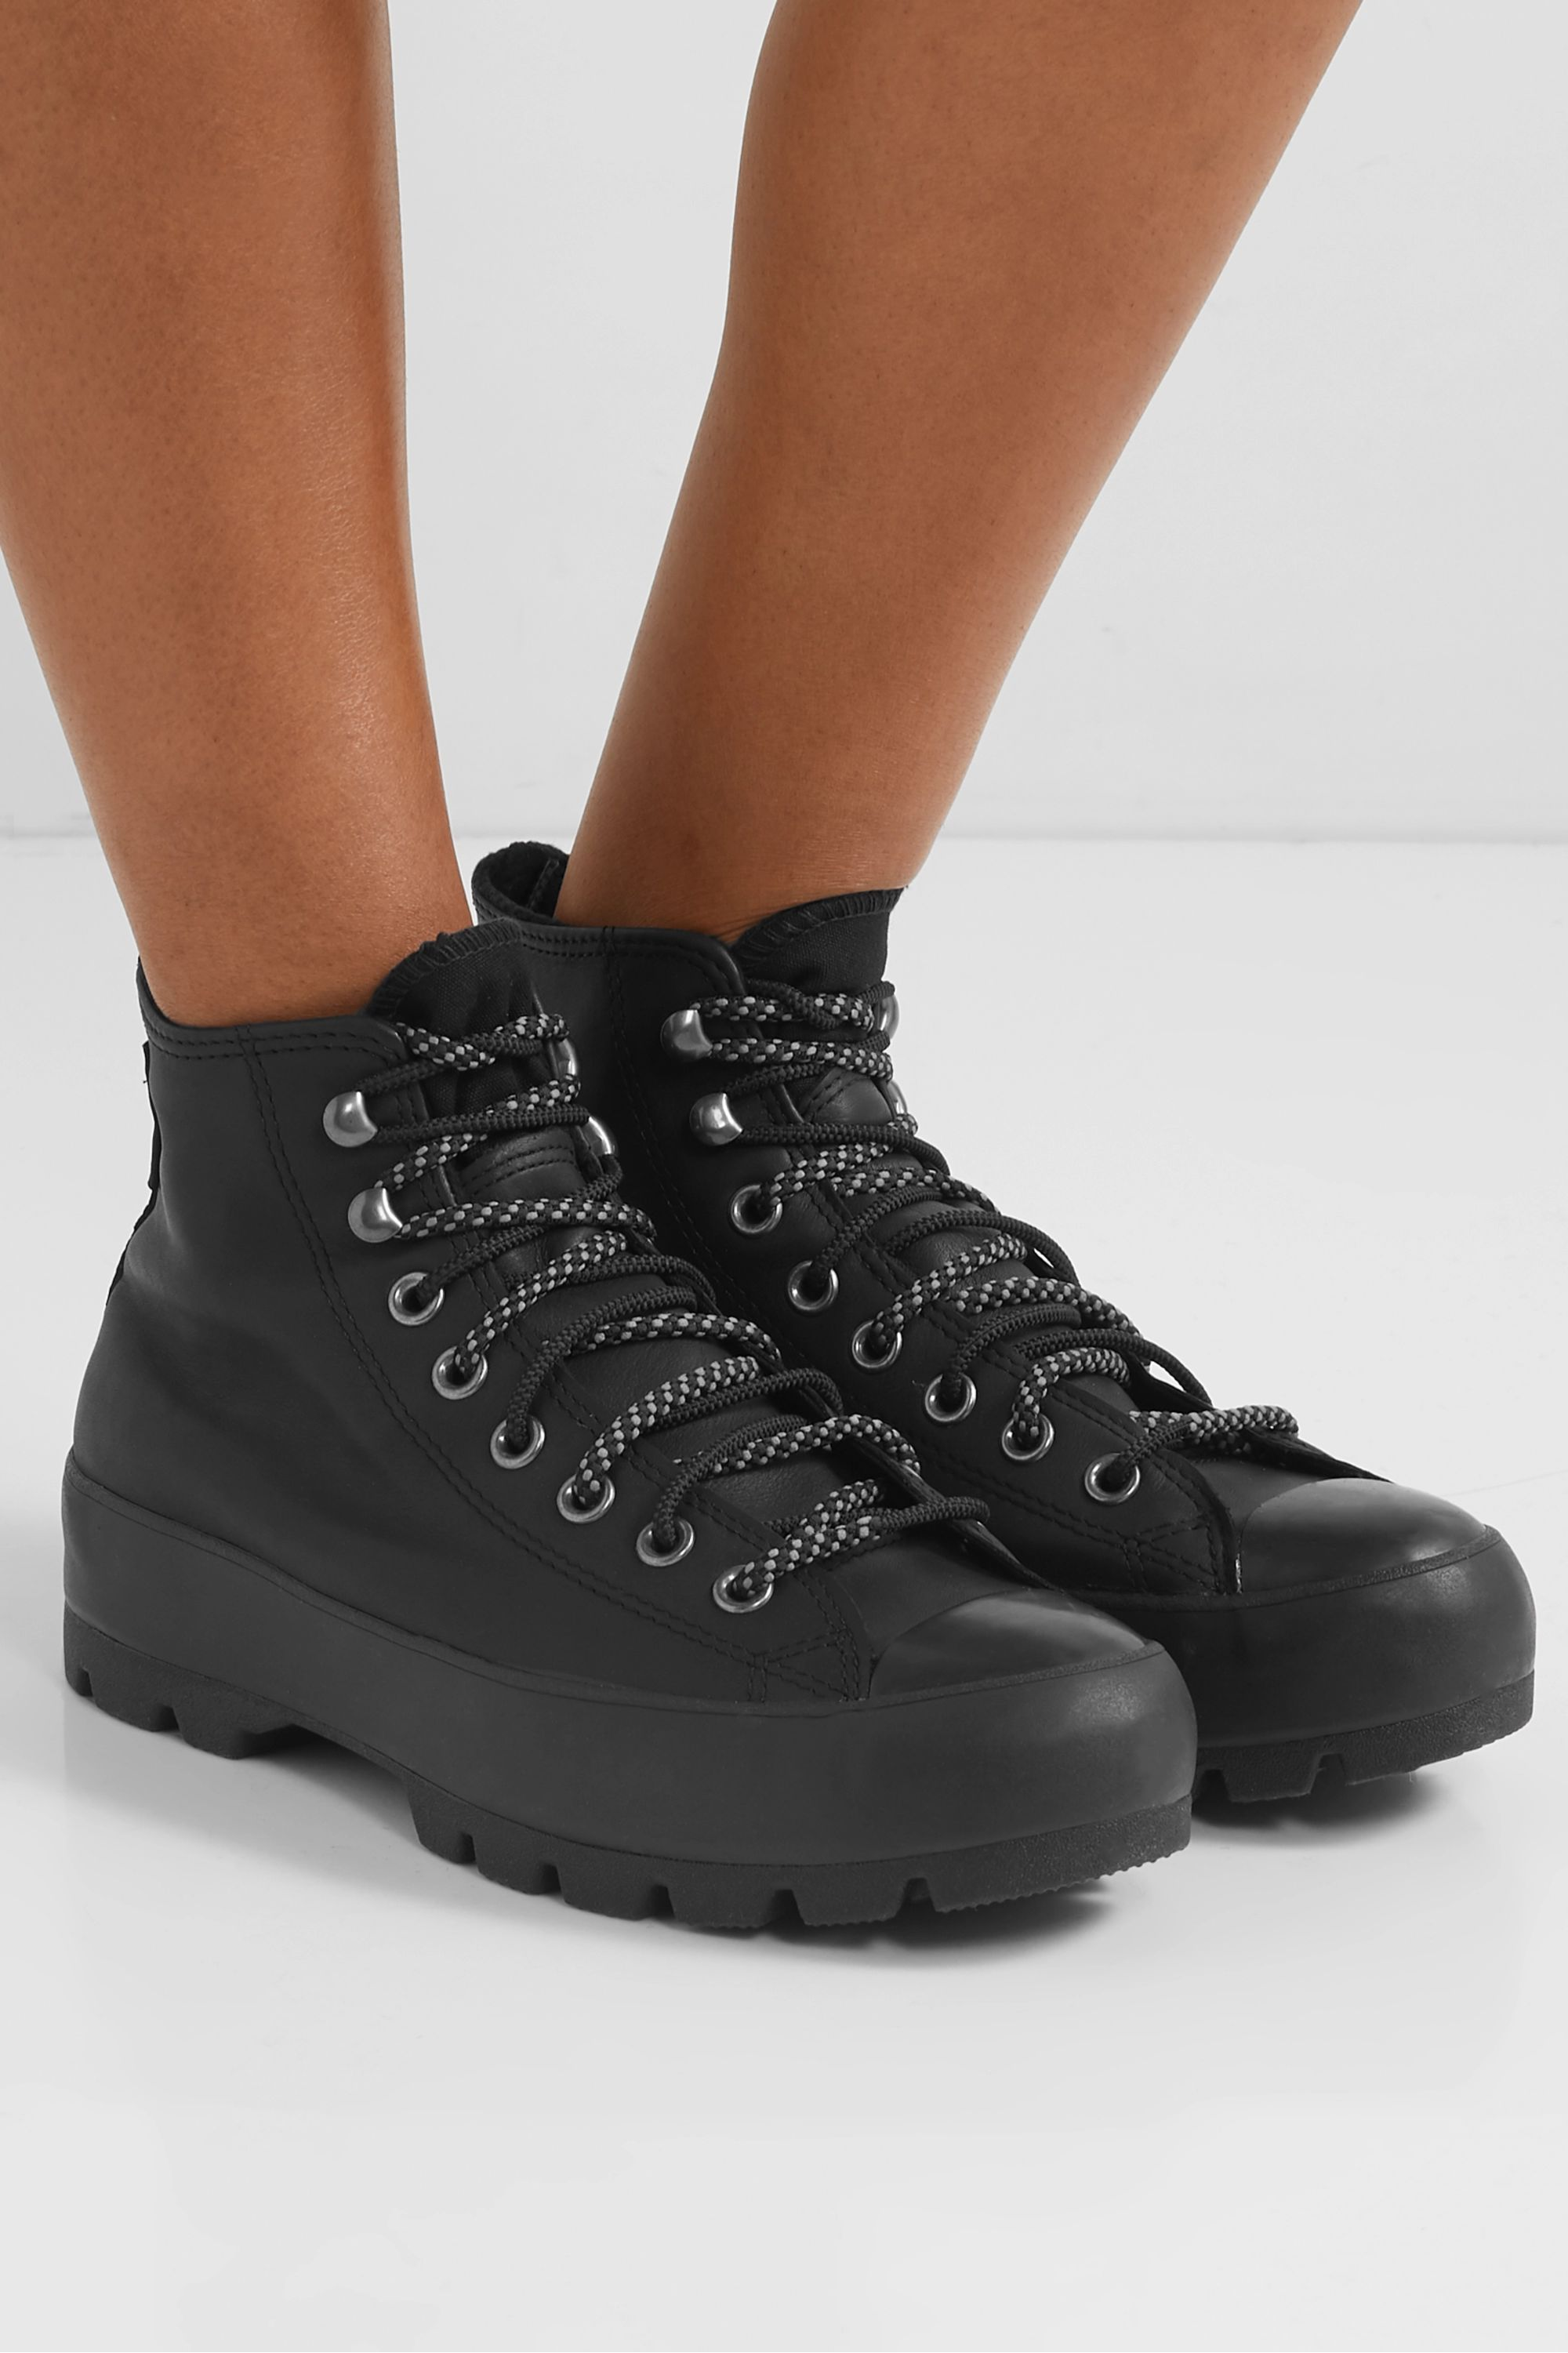 Sneakers Shoe High top Converse Boot, cotton boots, leather